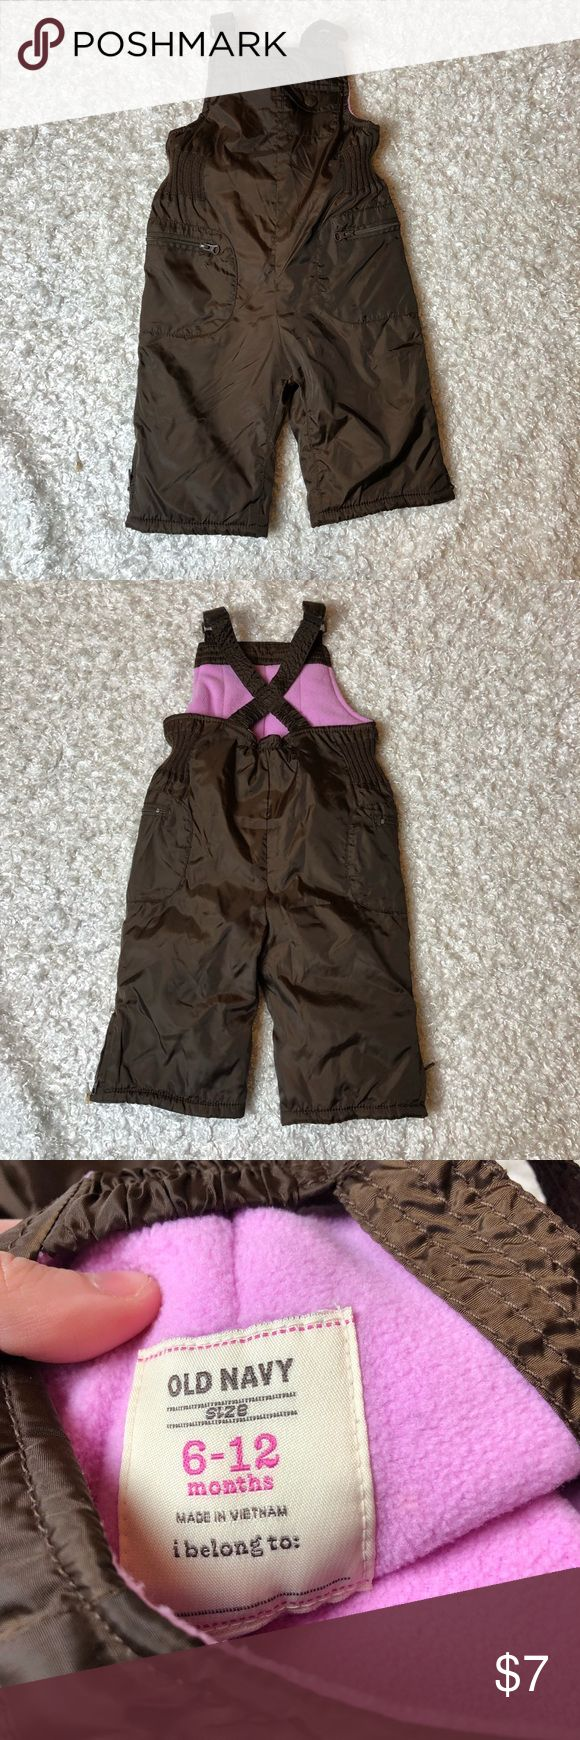 Girls old navy snow bib suit Size 6-12 months, the material is fleece on the inside. Bundle and save! Old Navy Bottoms Overalls